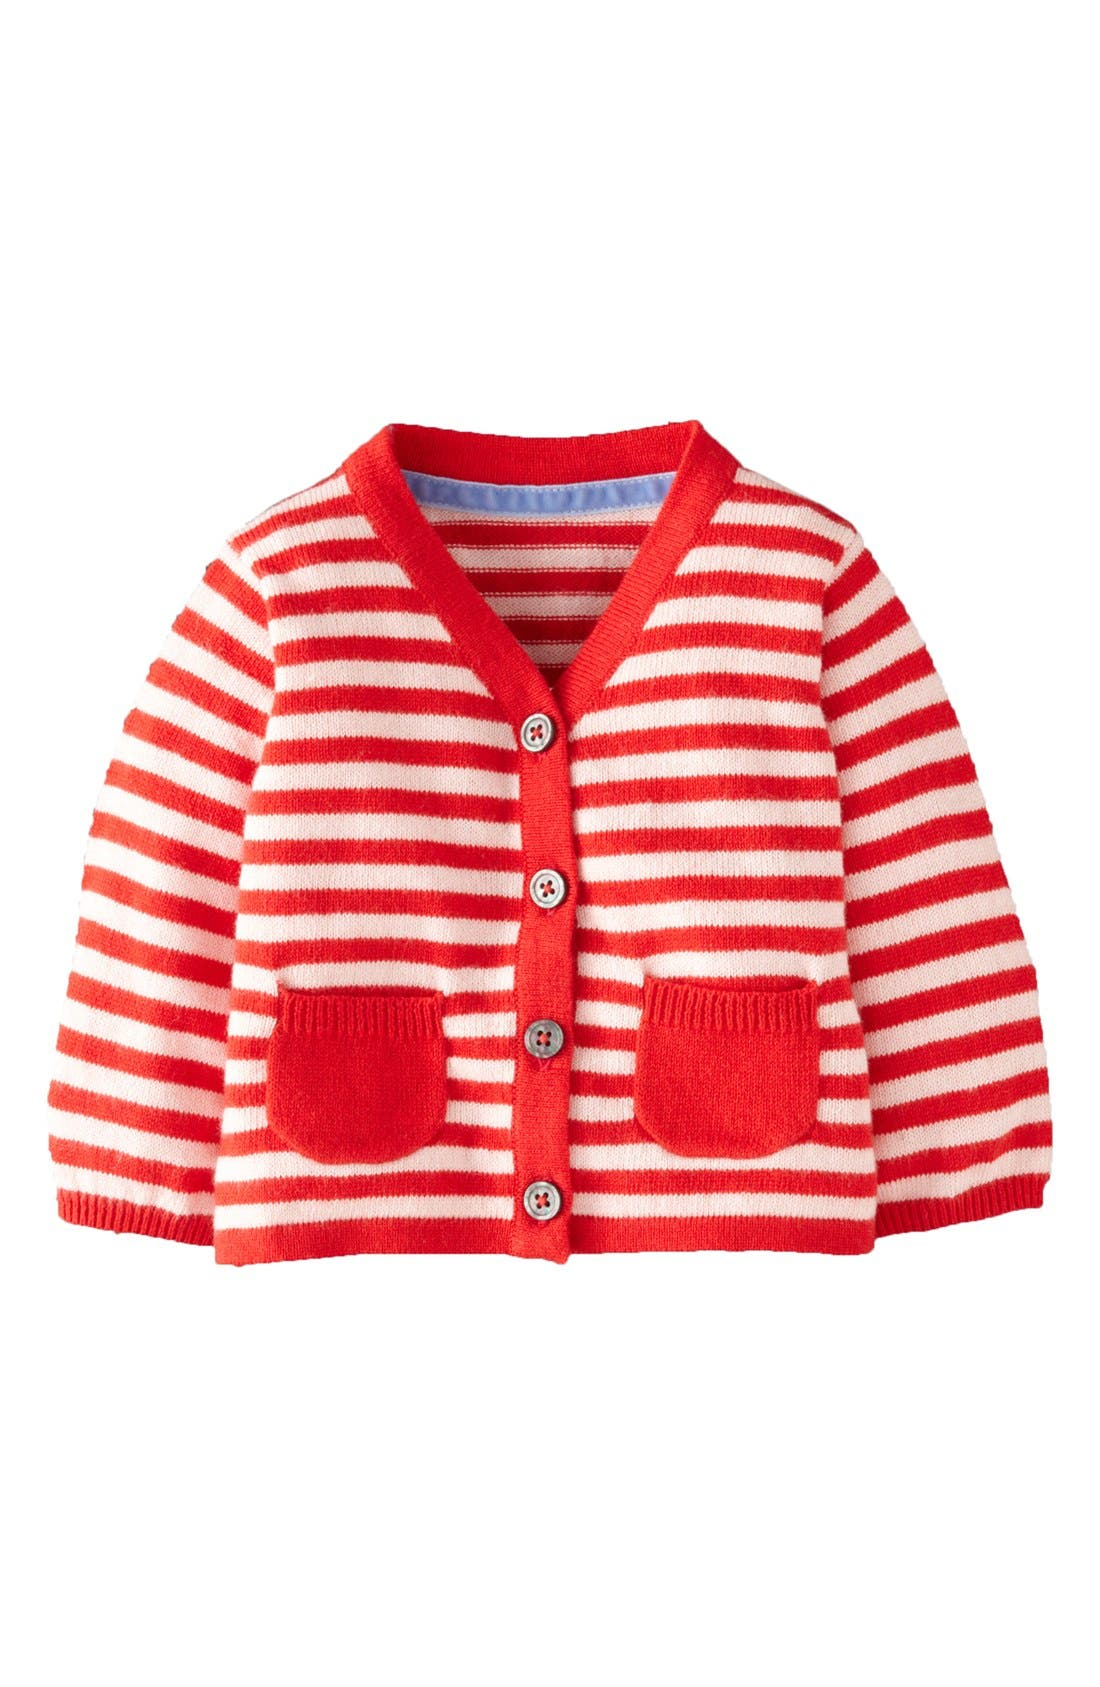 Main Image - Mini Boden 'Favorite' Cardigan (Baby Girls)